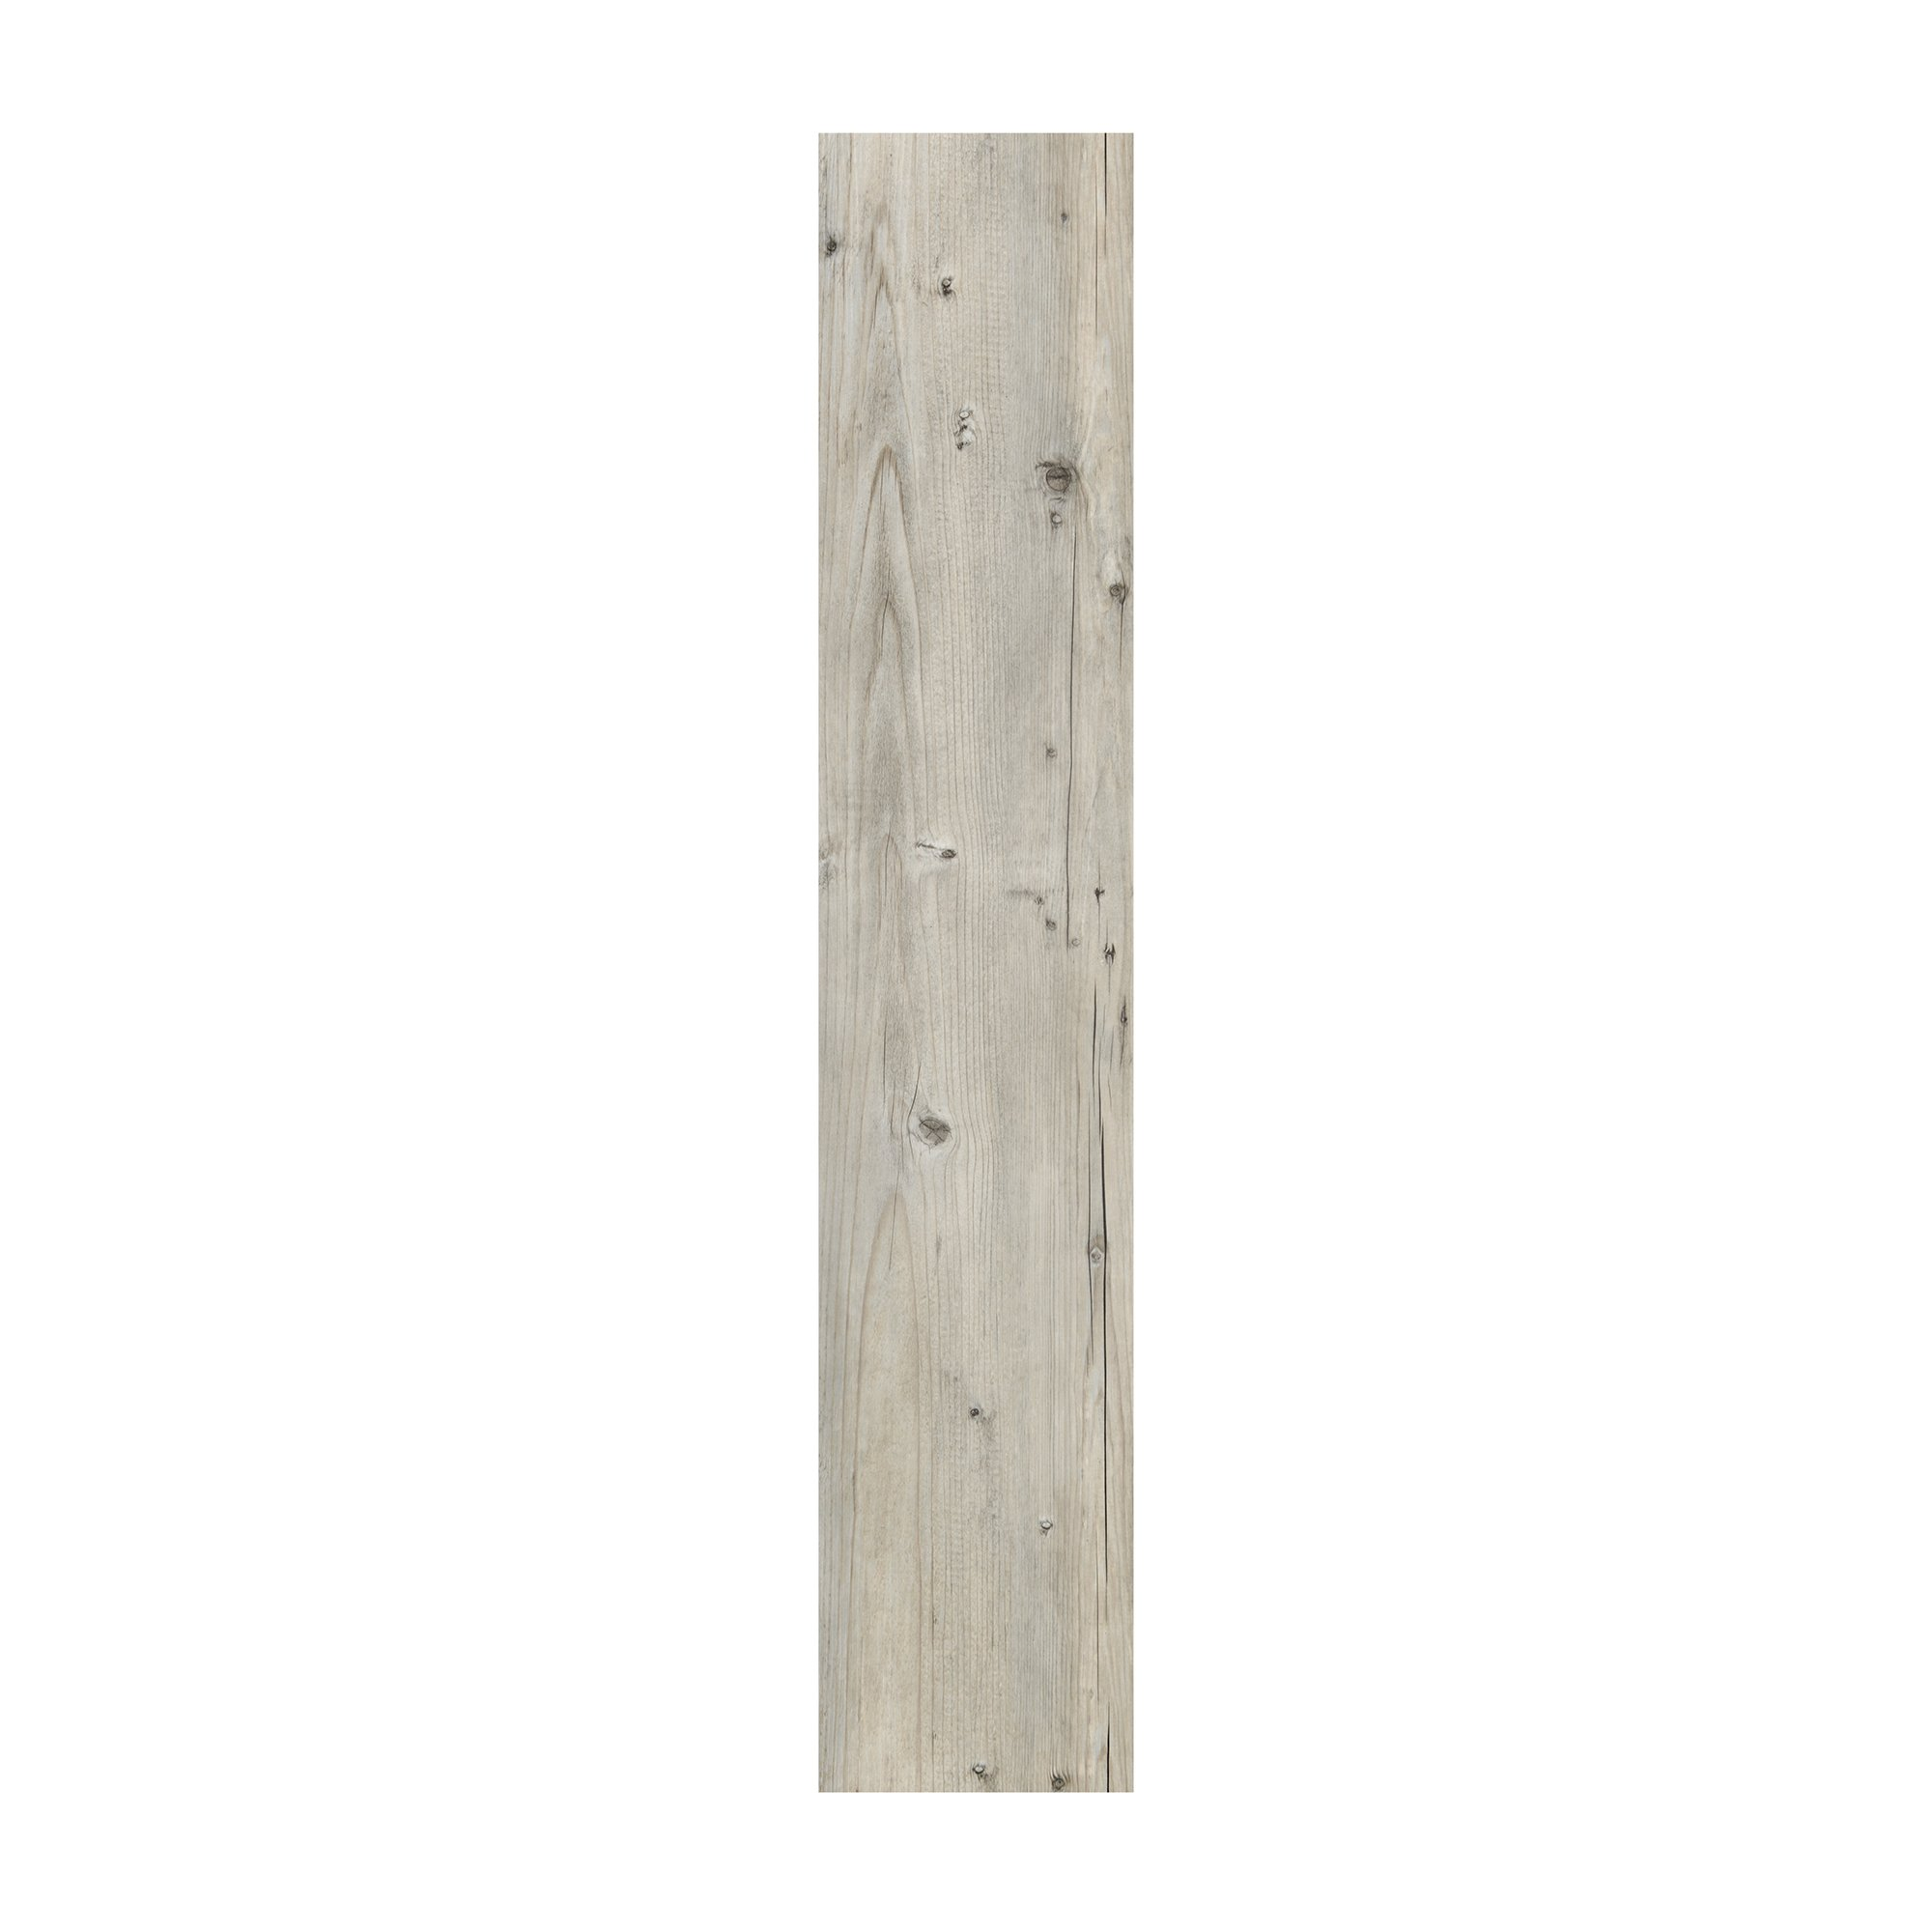 Achim Home Furnishings LSLYP10108 Flex Flor Looselay Plank 9in x 48in Dunes-8 Planks/24 sq. ft. Vinyl Flooring